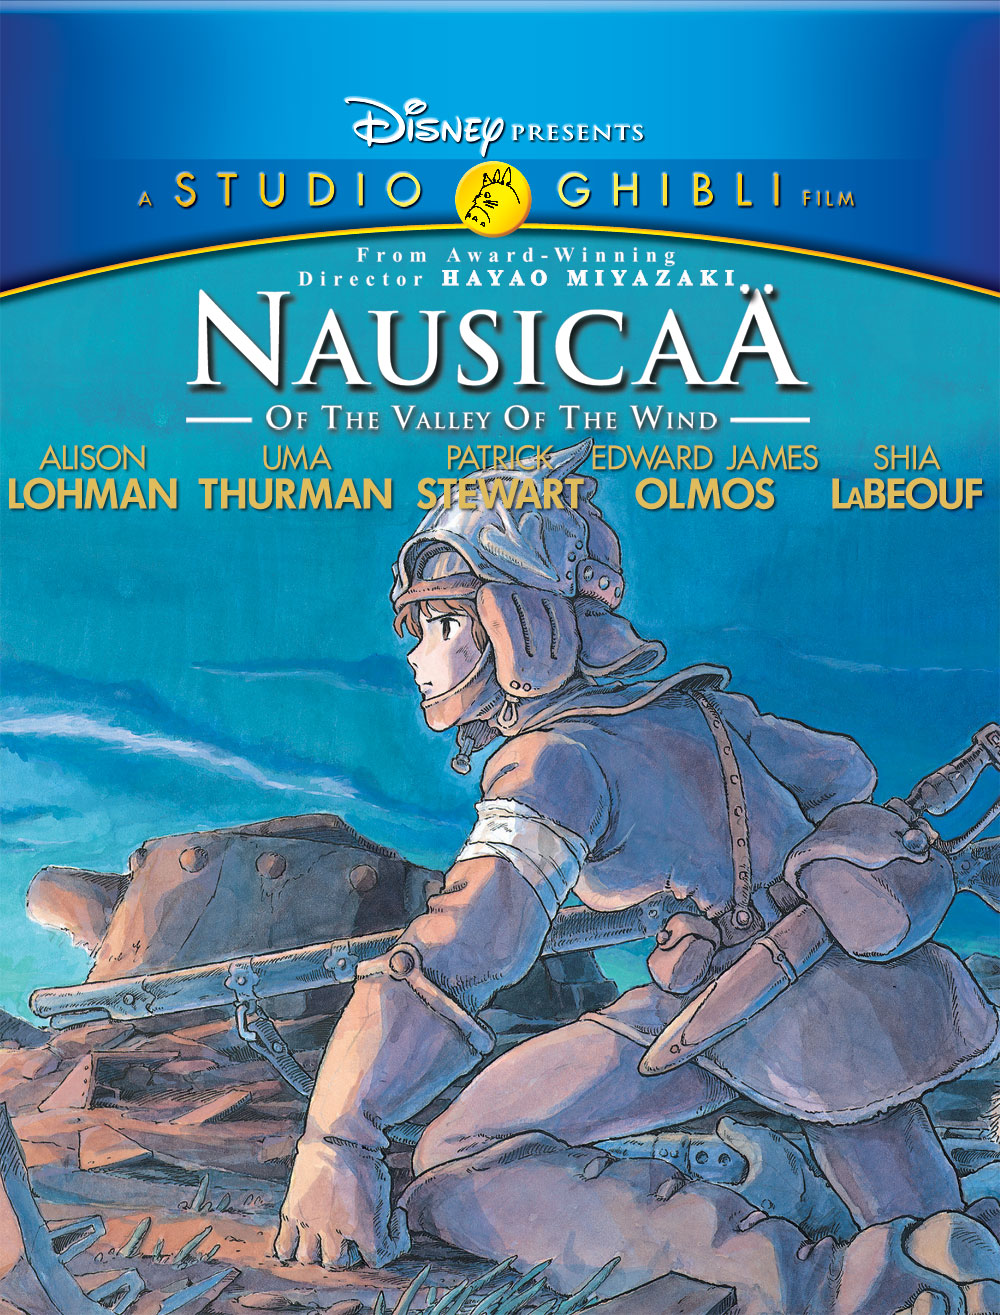 Hq Nausicaä Of The Valley Of The Wind Wallpapers - Nausicaa Of The Valley Of The Wind Blu Ray , HD Wallpaper & Backgrounds